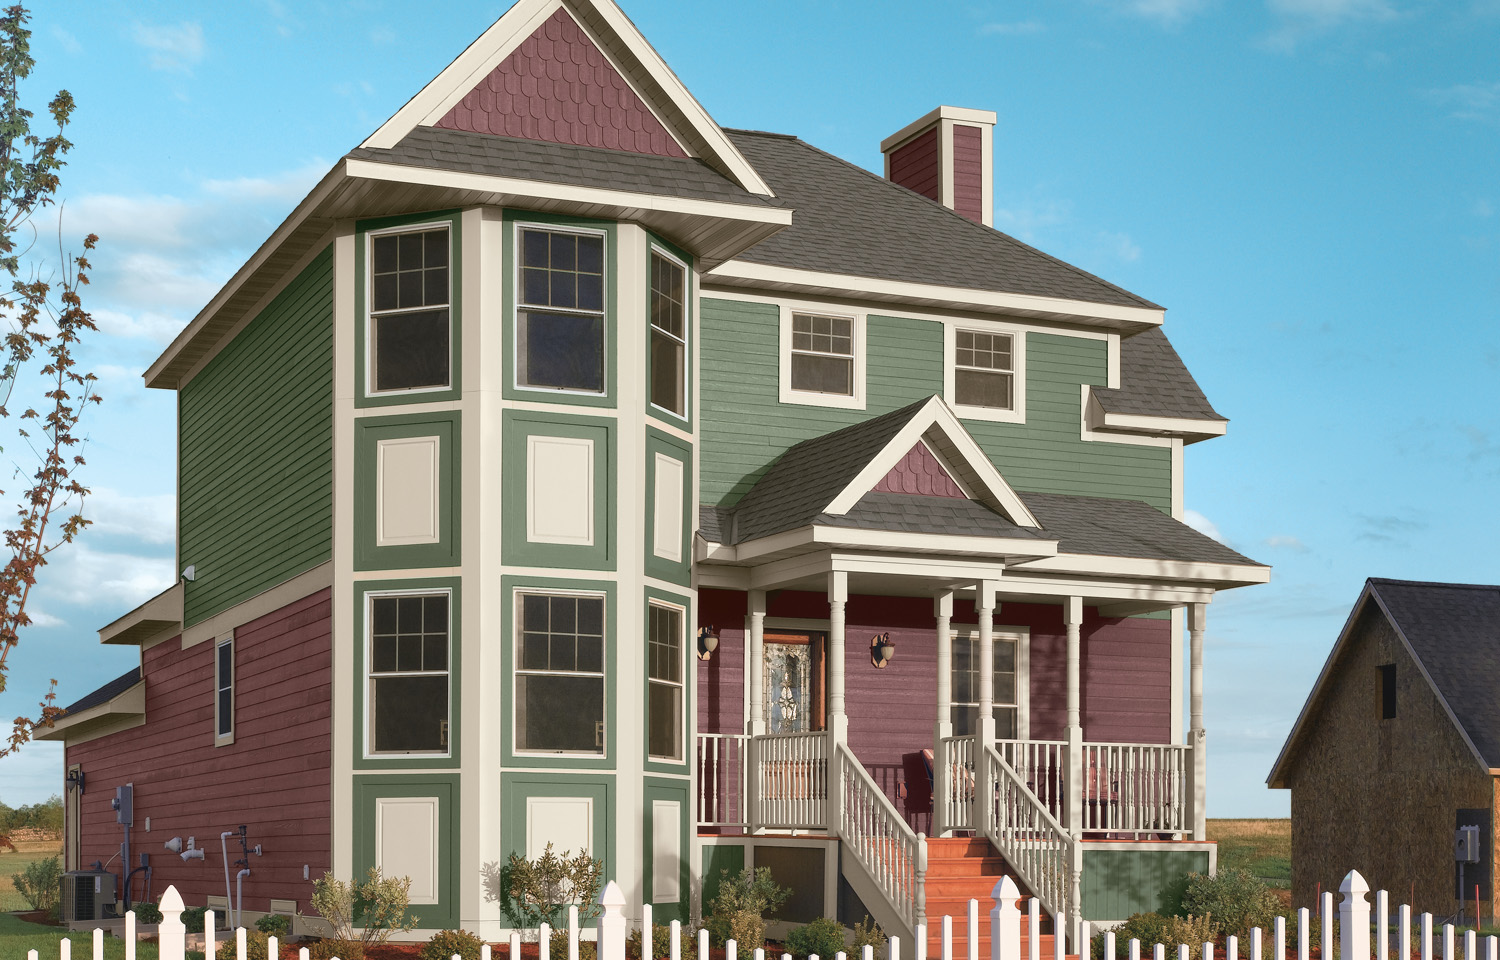 Victorians And Other Older Homes Utilize A Lot Of Decorative Siding  Features And Colors To Bring Out Their Best. This Home Uses Three Distinct  Colors, ...